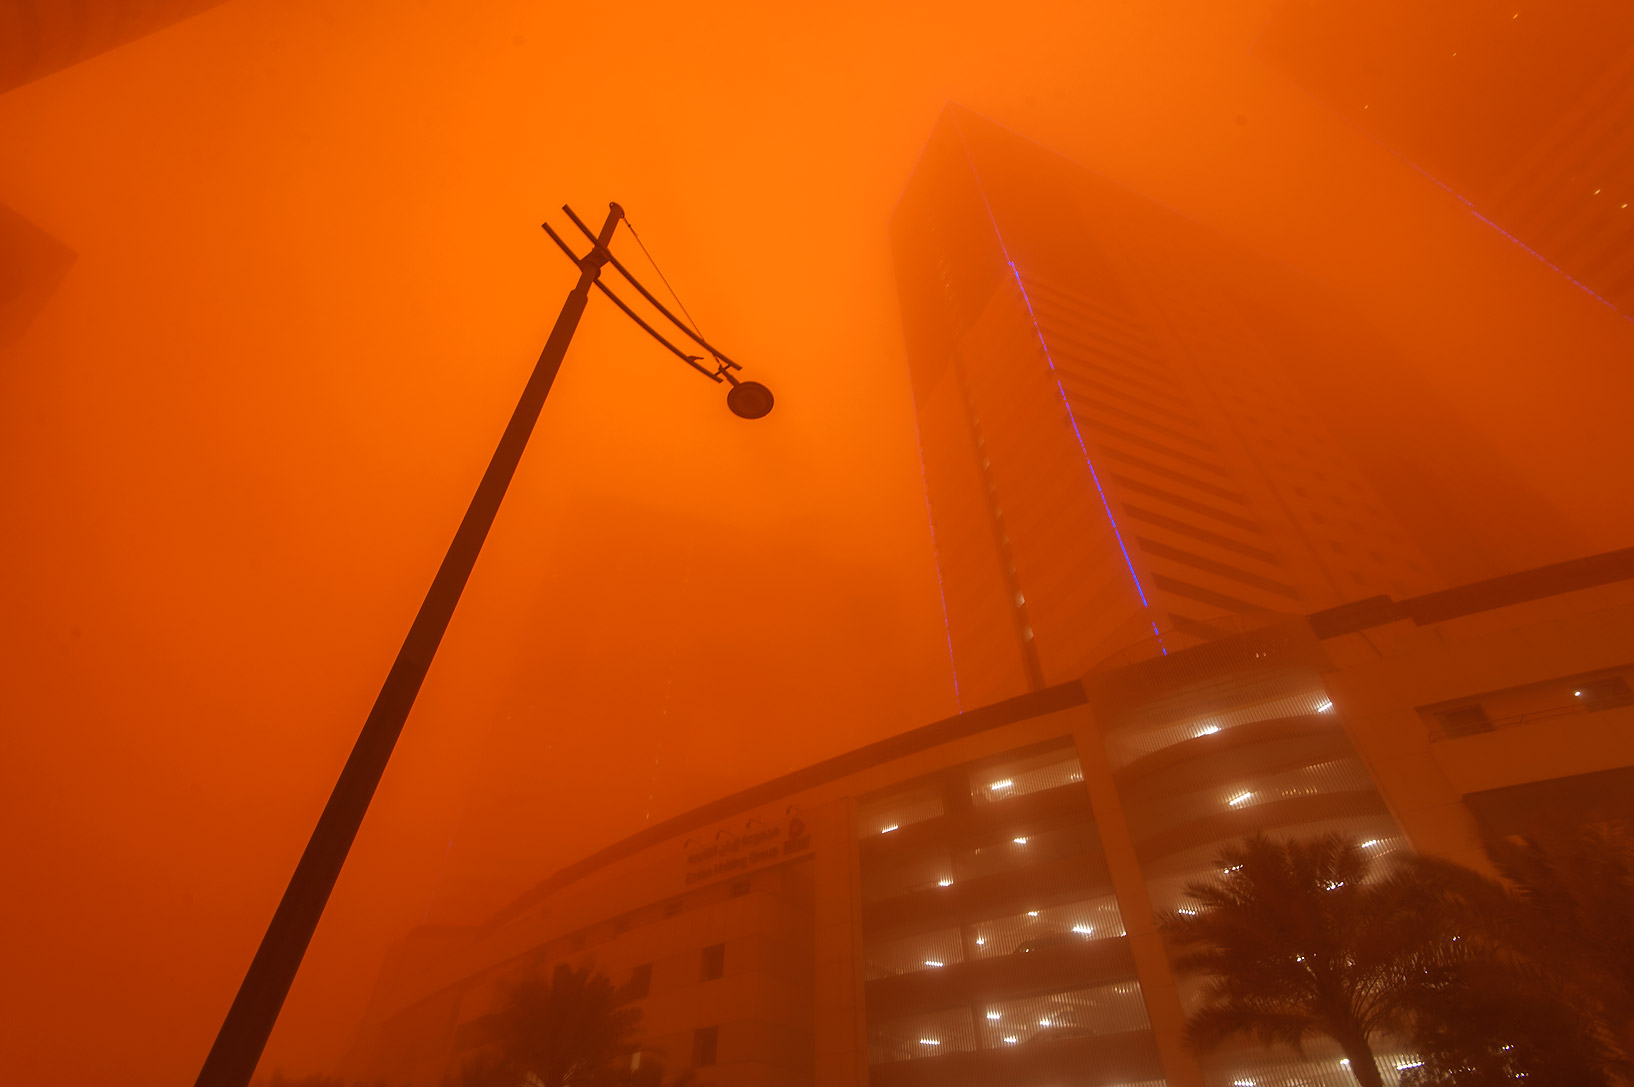 Ezdan Hotel and Suites in West Bay in orange dust. Doha, Qatar